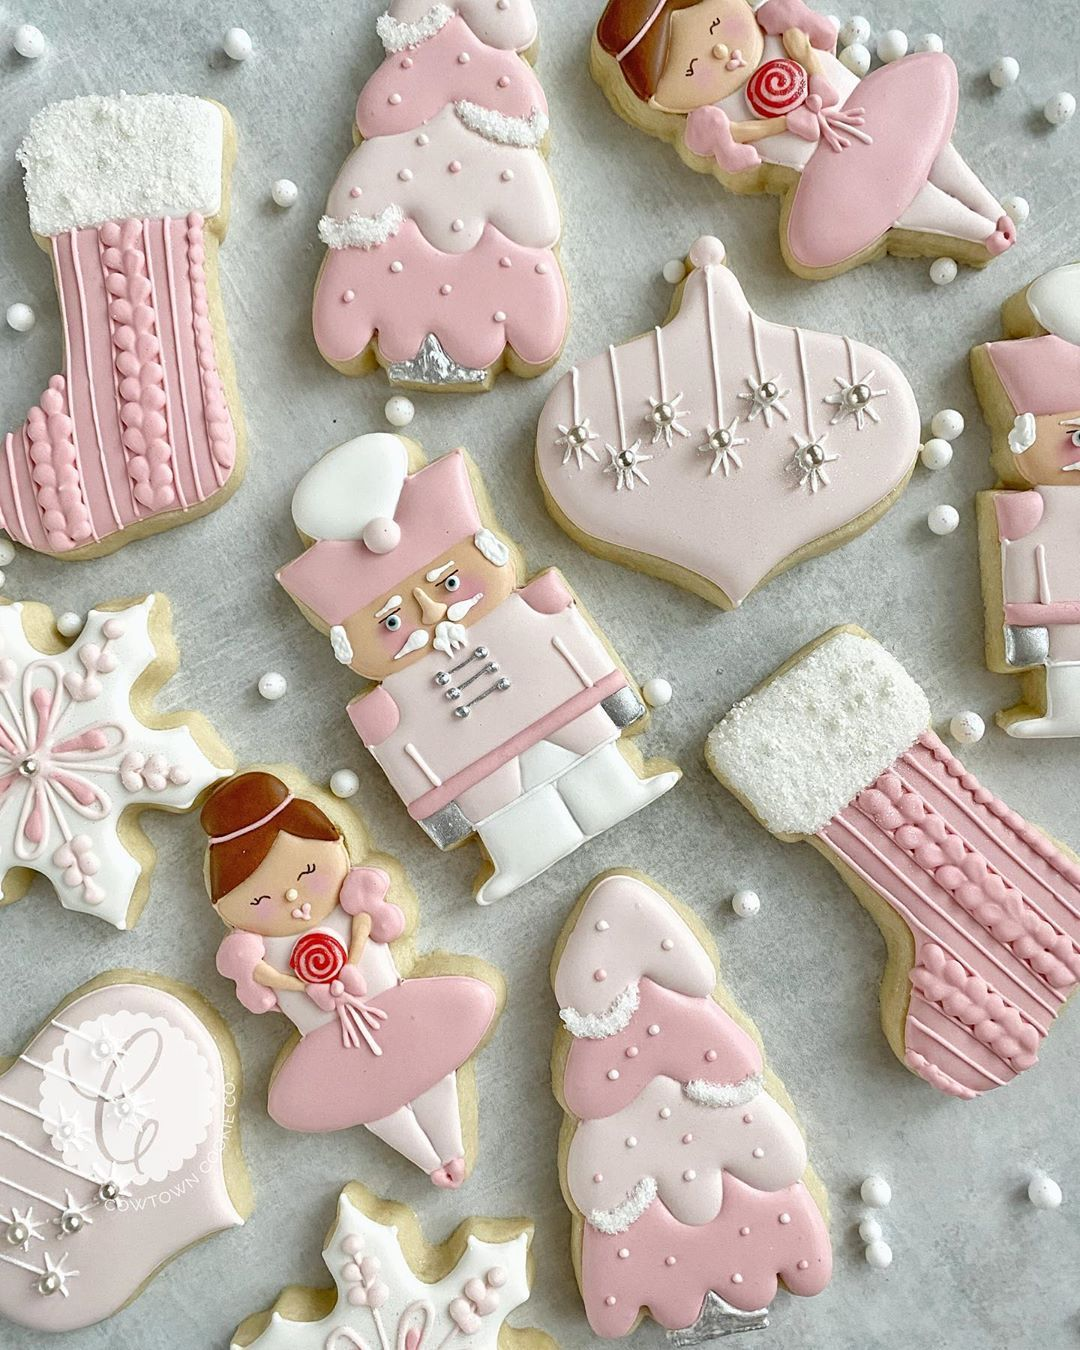 "Cowtown Christmas 2020 Cowtown Cookie Co. on Instagram: ""I'm dreaming of a pink Christmas"